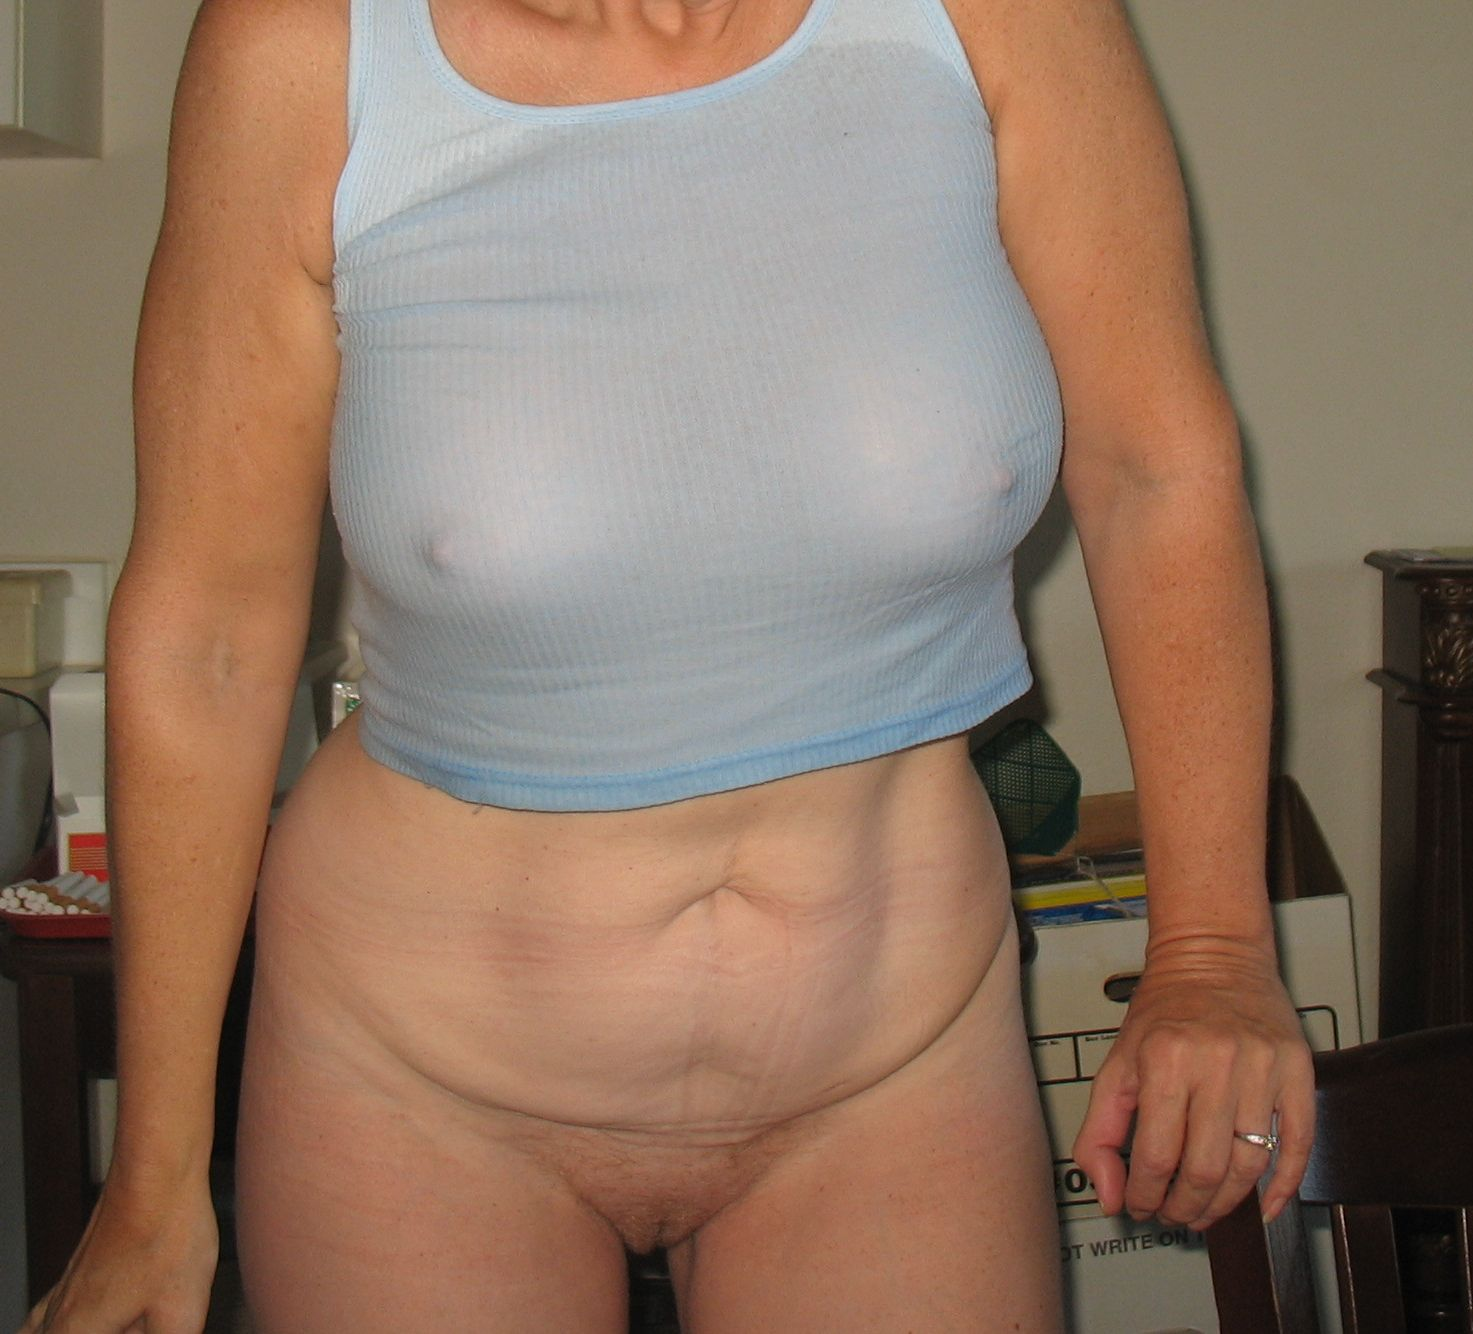 Mature female photo gallery